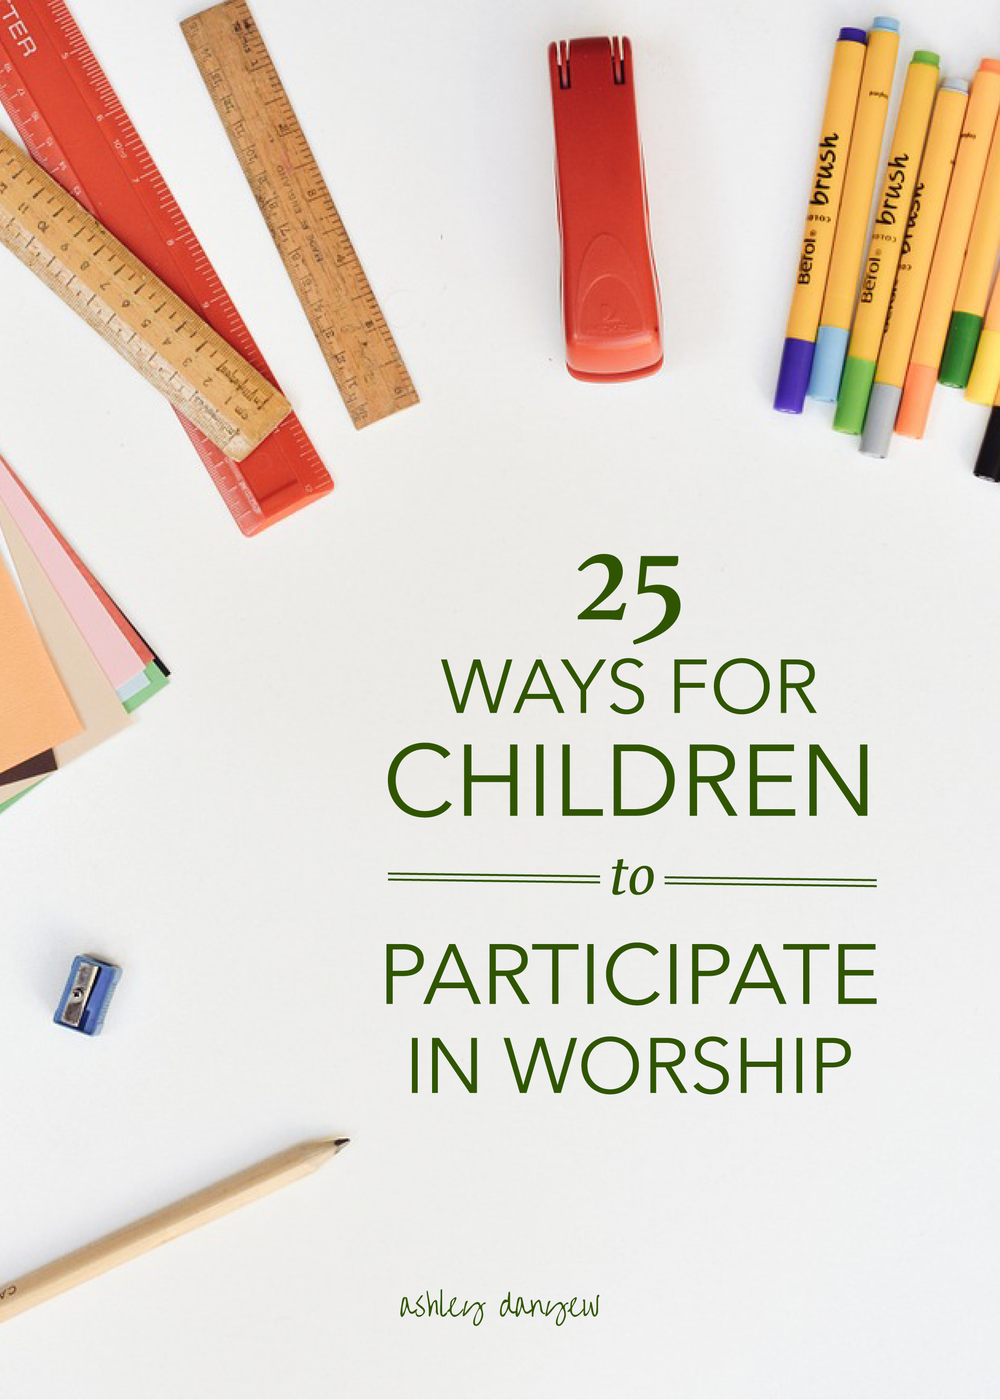 25-Ways-for-Children-to-Participate-in-Worship-01.png